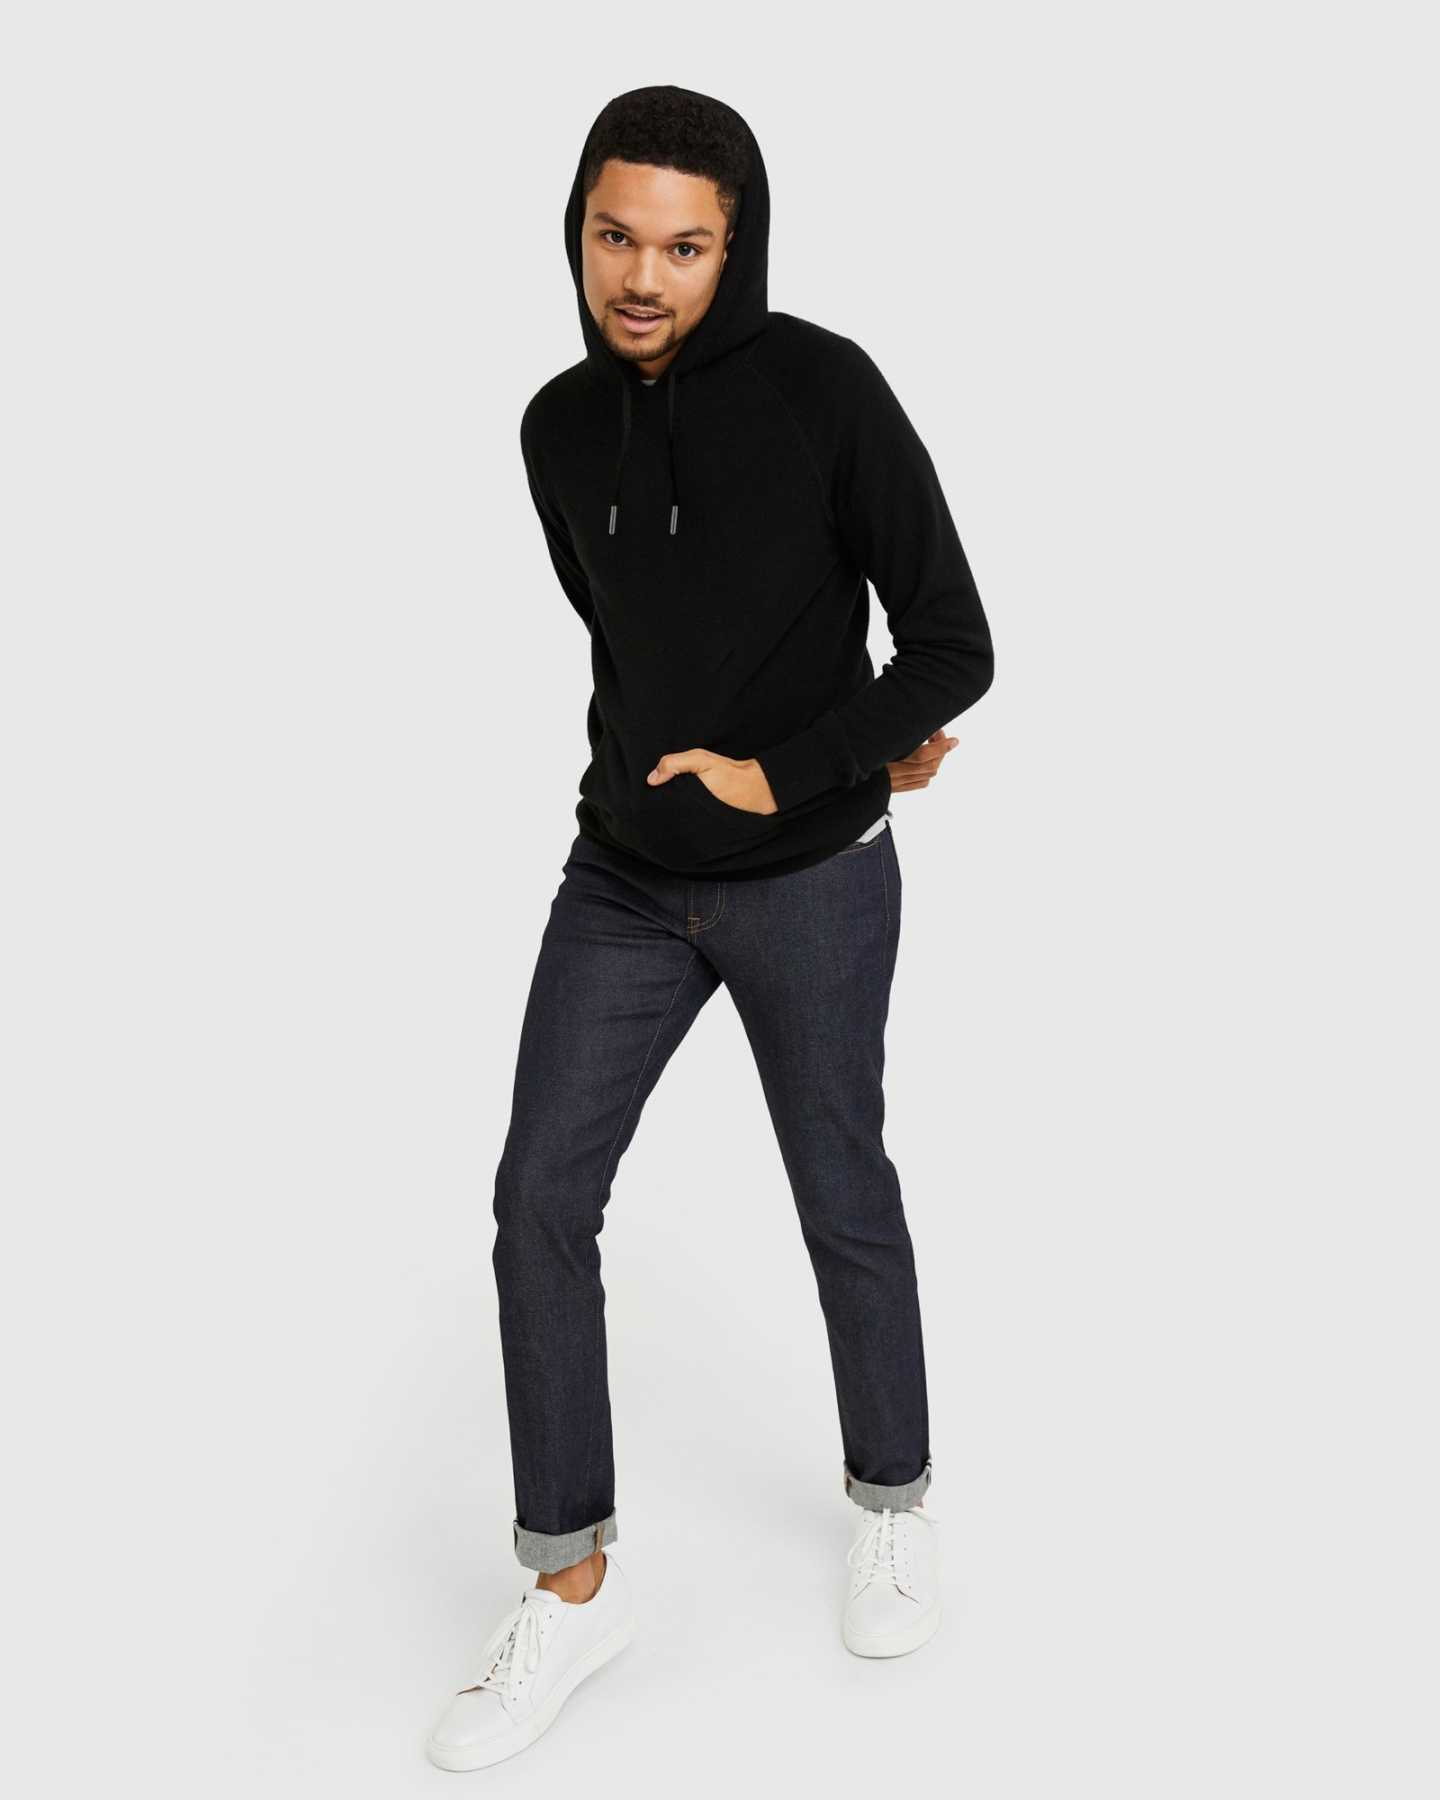 Cashmere hoodie men in black pullover